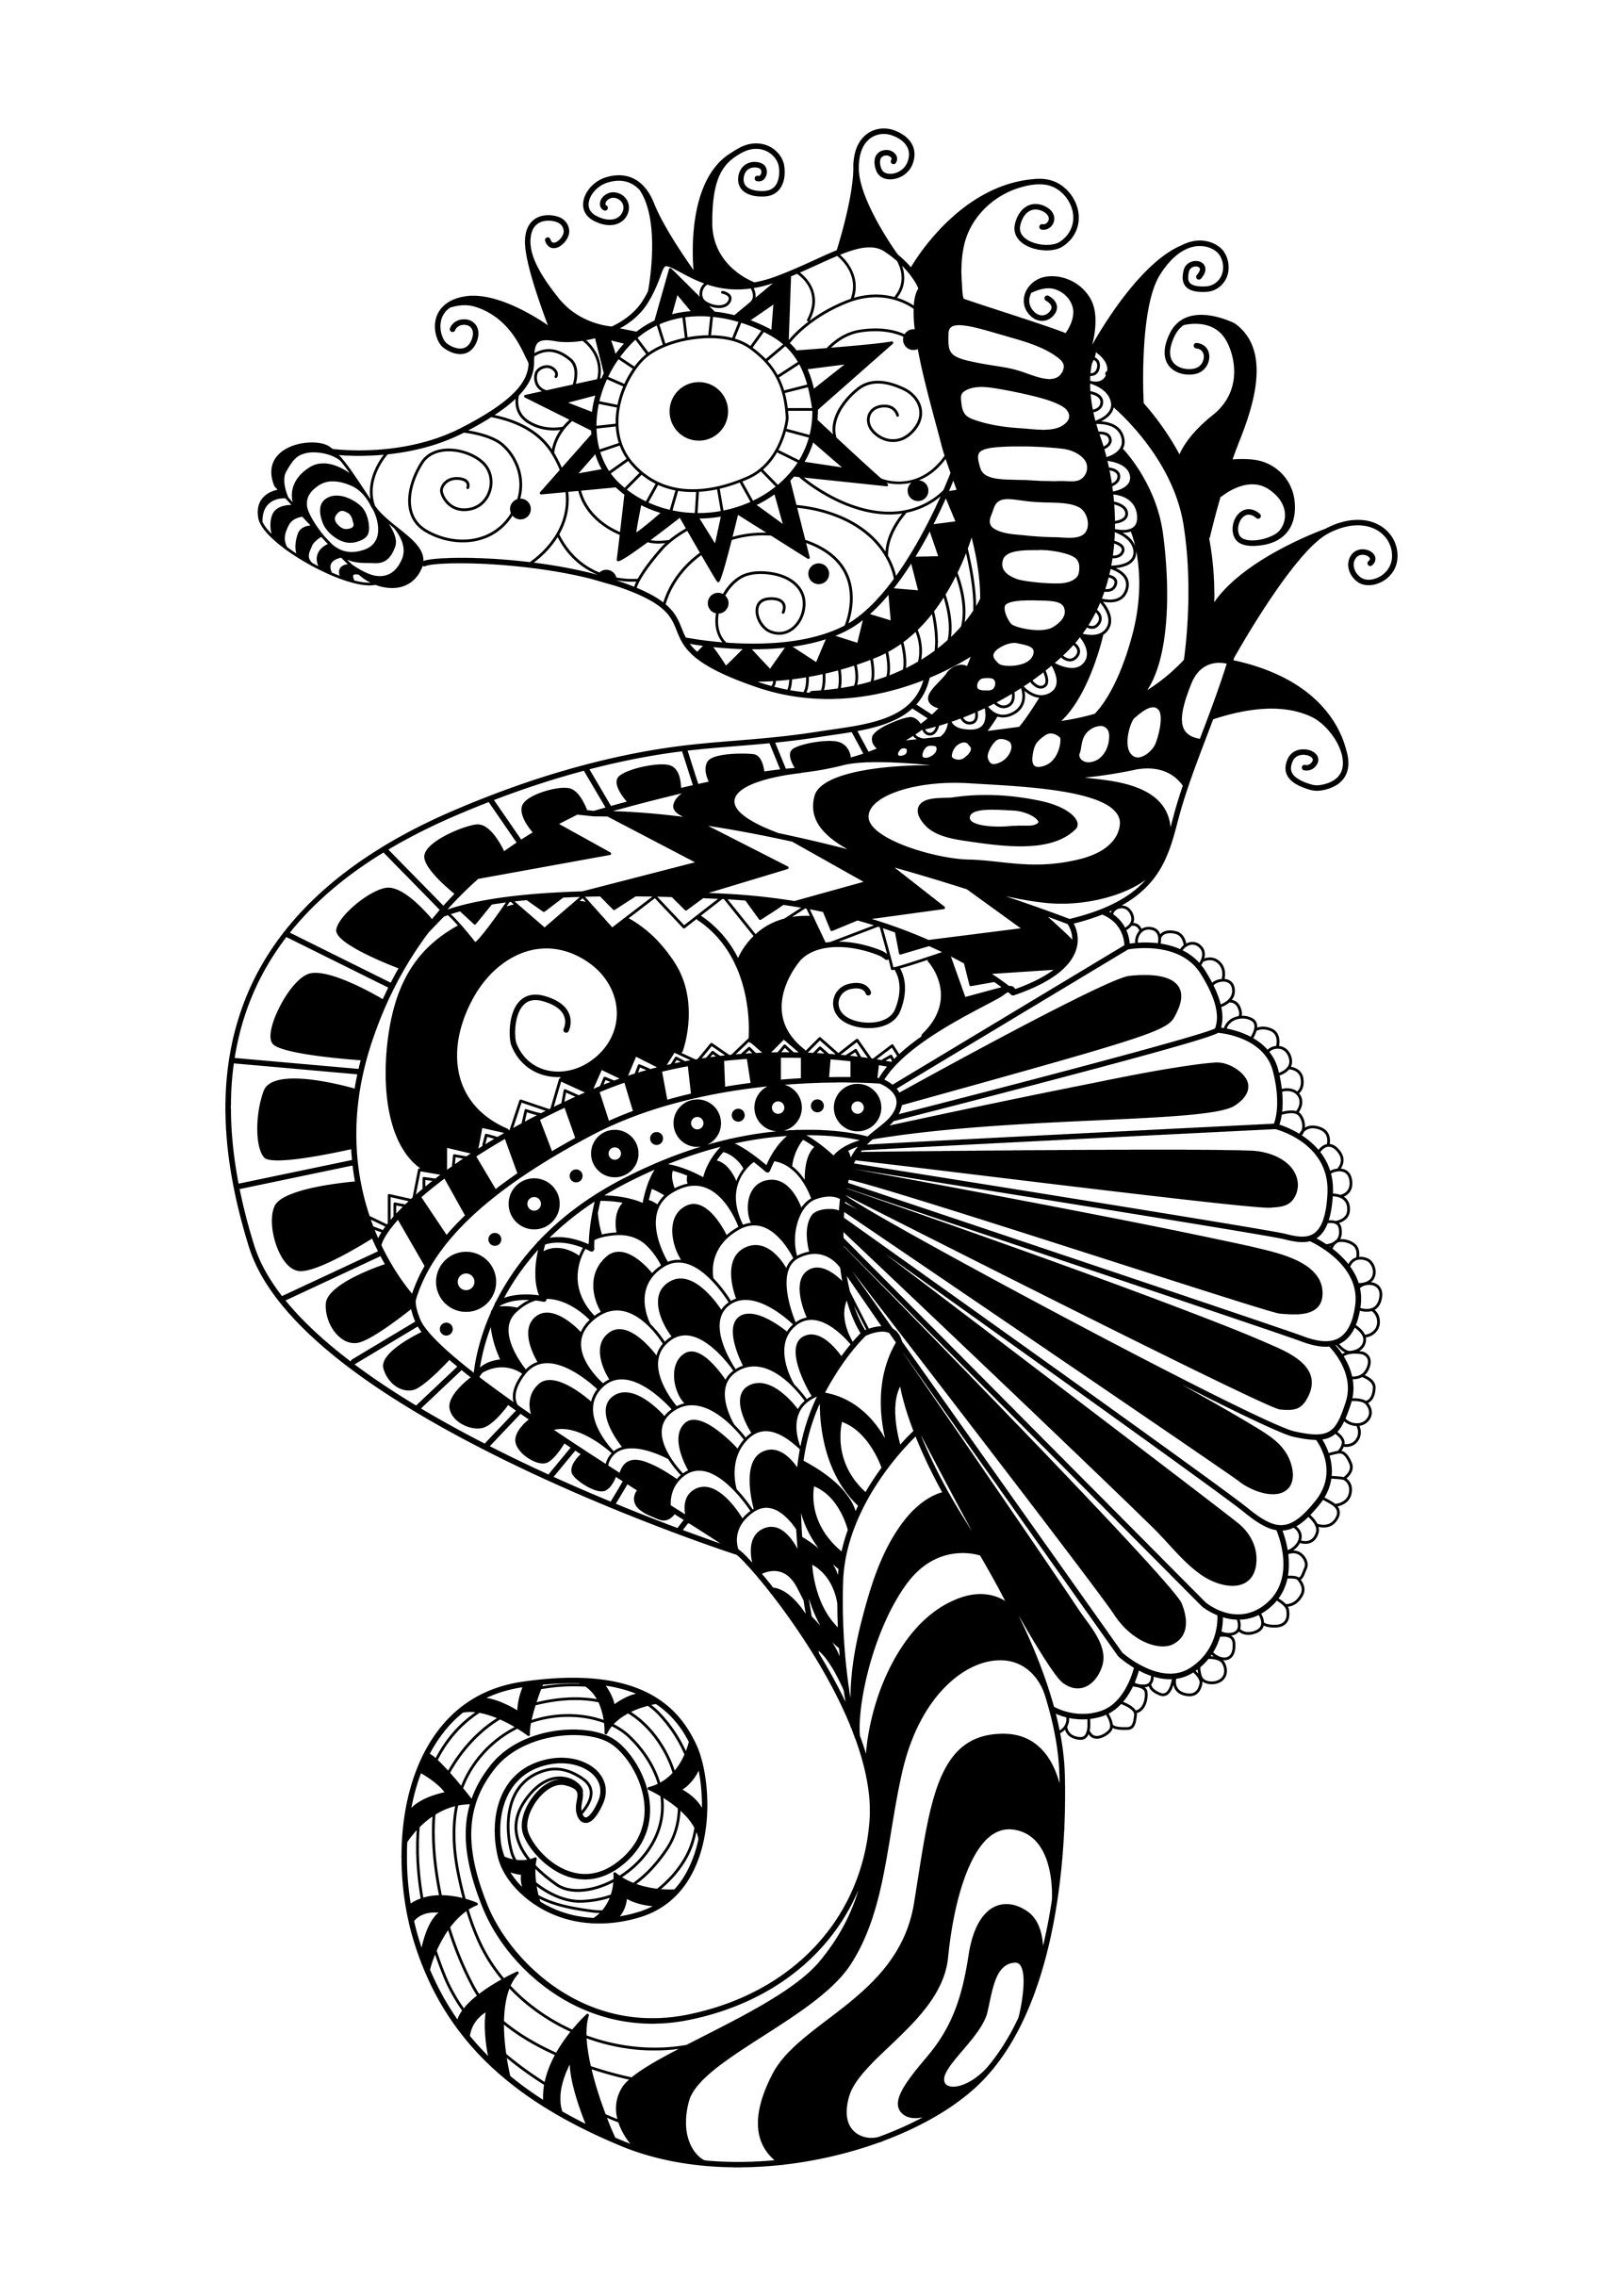 Zentangle sea horse - Zentangle Adult Coloring Pages - Page 2